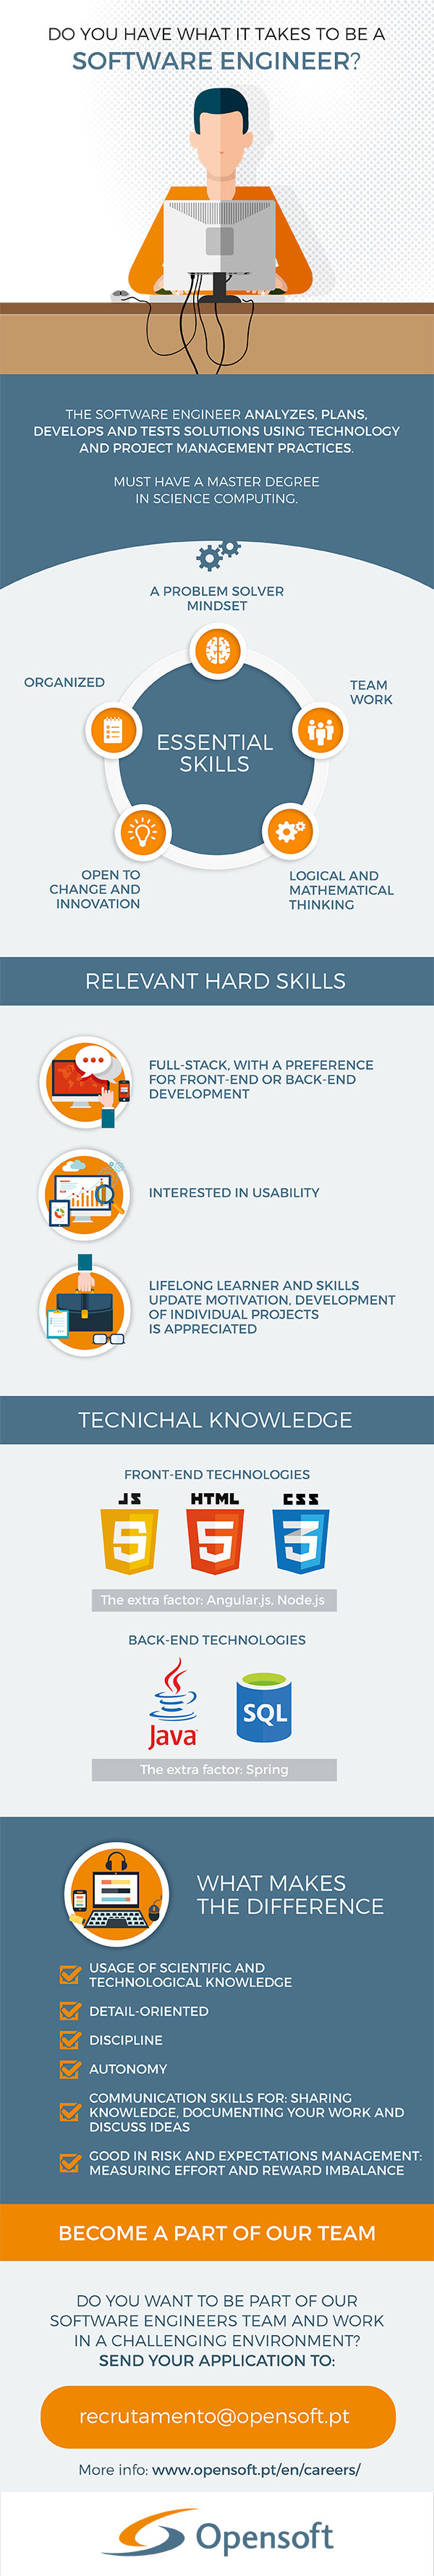 opensoft_infographic_software_engineer